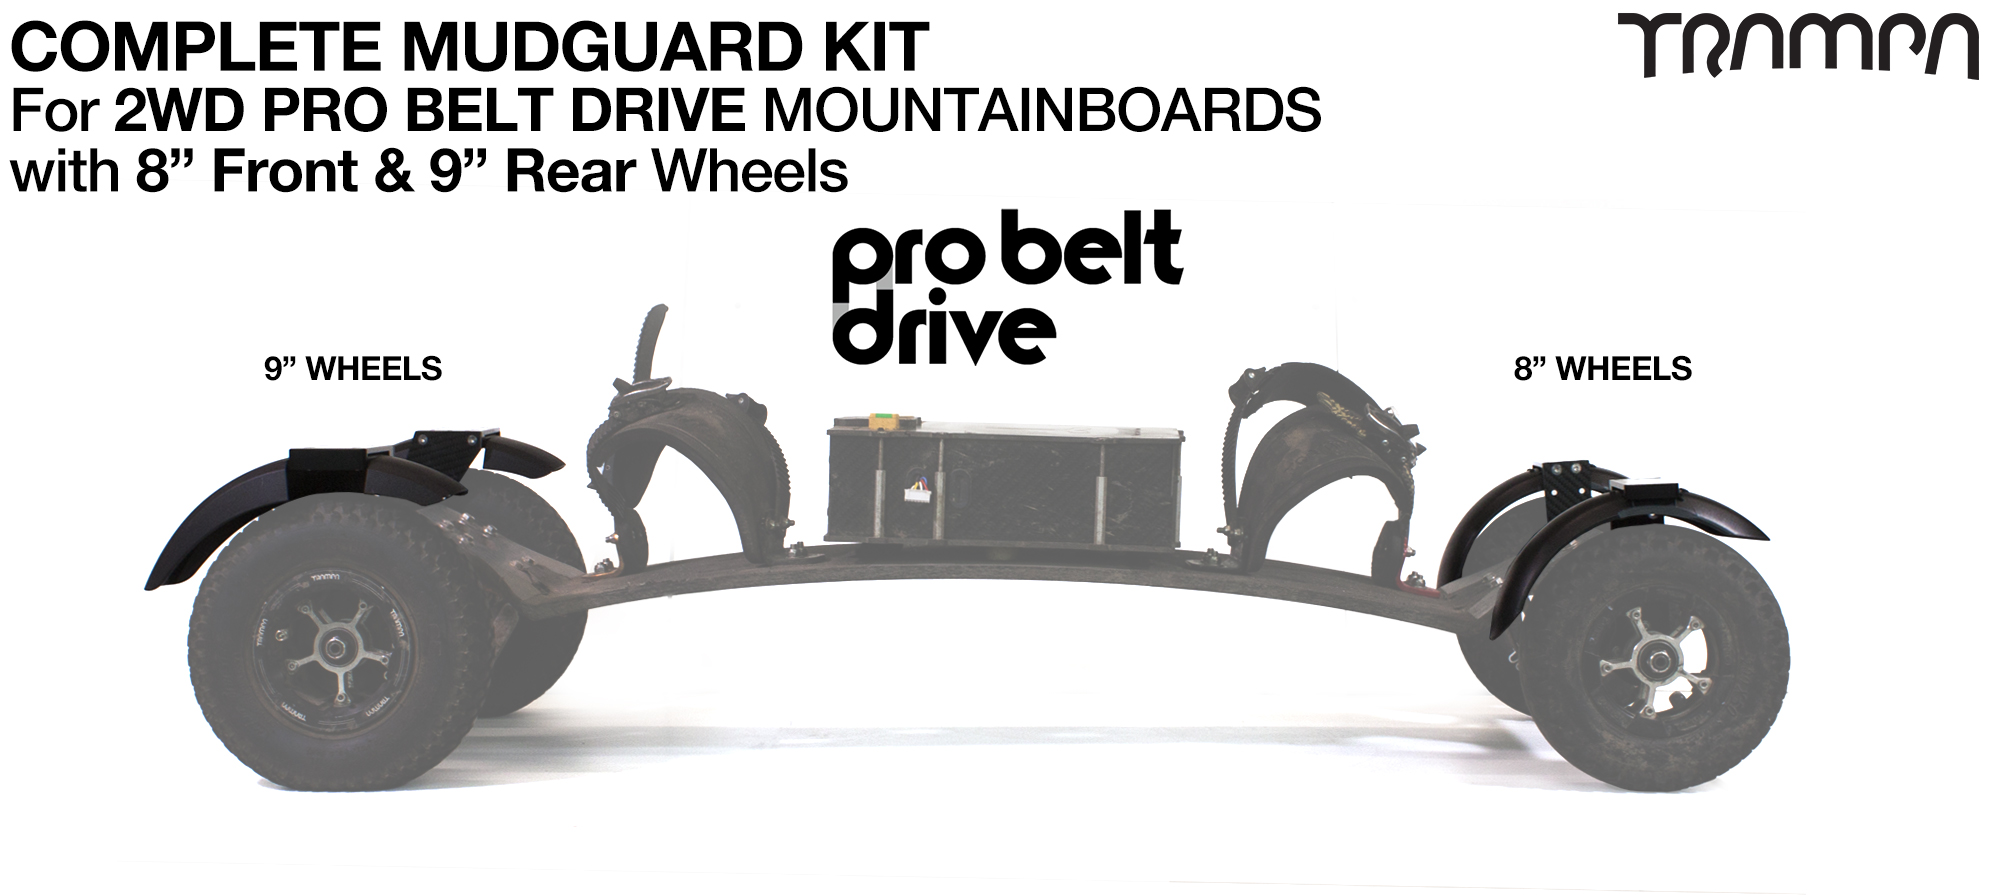 """Full Mudguard Kit for 2WD PRO BELT DRIVE Mountainboards - 8"""" & 9"""" Wheels"""